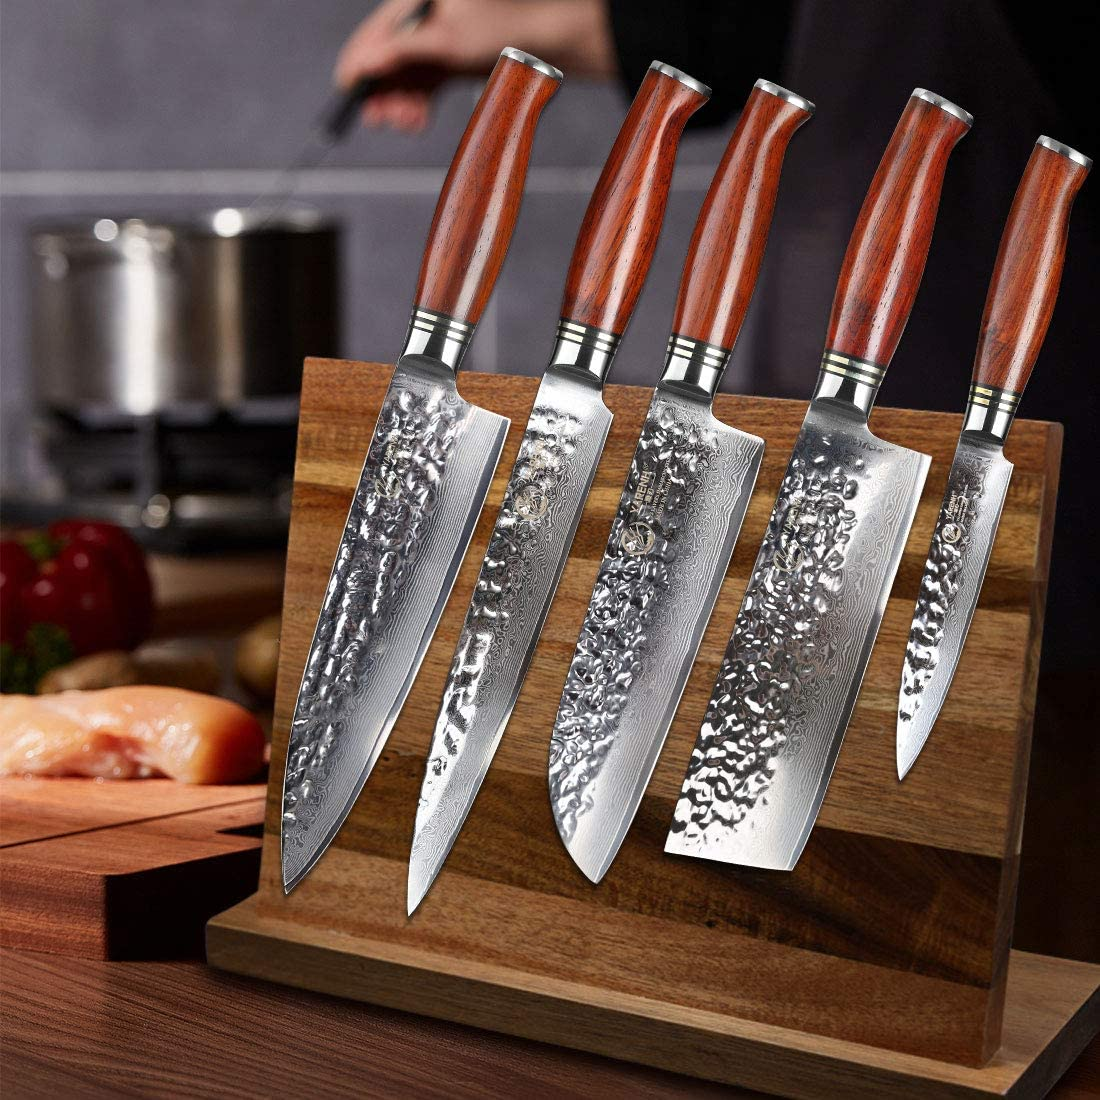 YARENH Kitchen Knife Set Professional 5 Piece Chef Knife Set - Damascus Stainless Steel - Galbergia Wood Handle,Gift Box Packaging,Sharp Vegetable ...